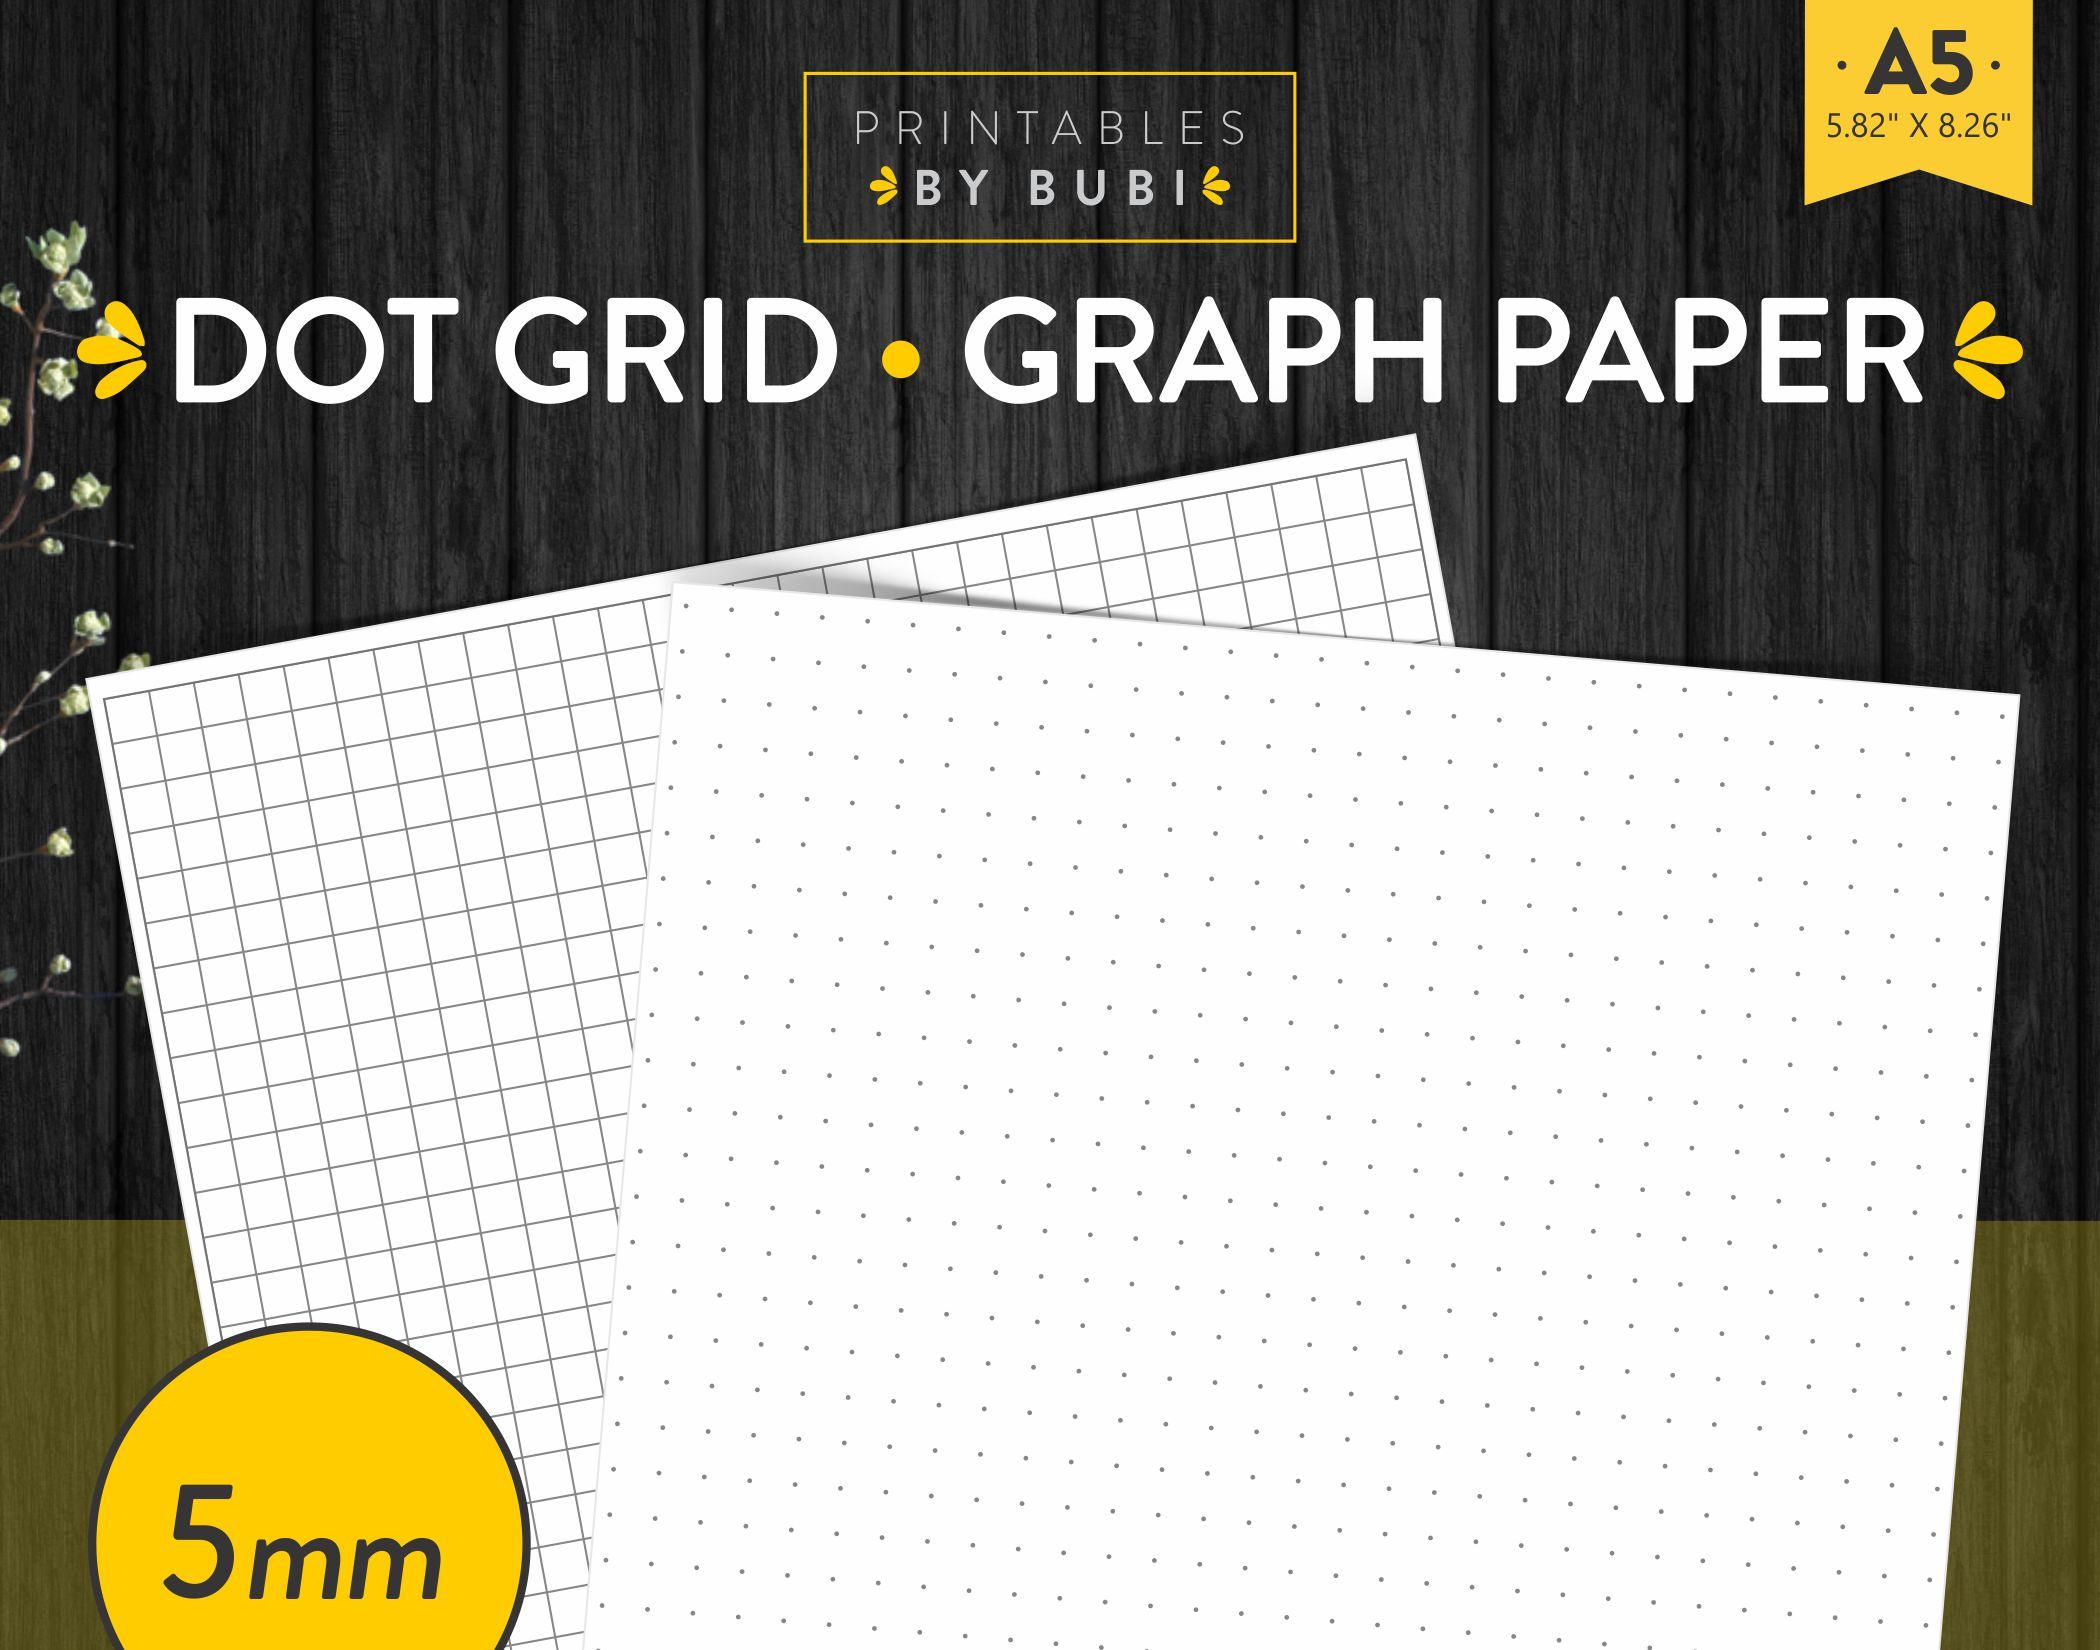 Dot Grid Paper 5mm Graph Paper Printable Planner, Grid Paper ...